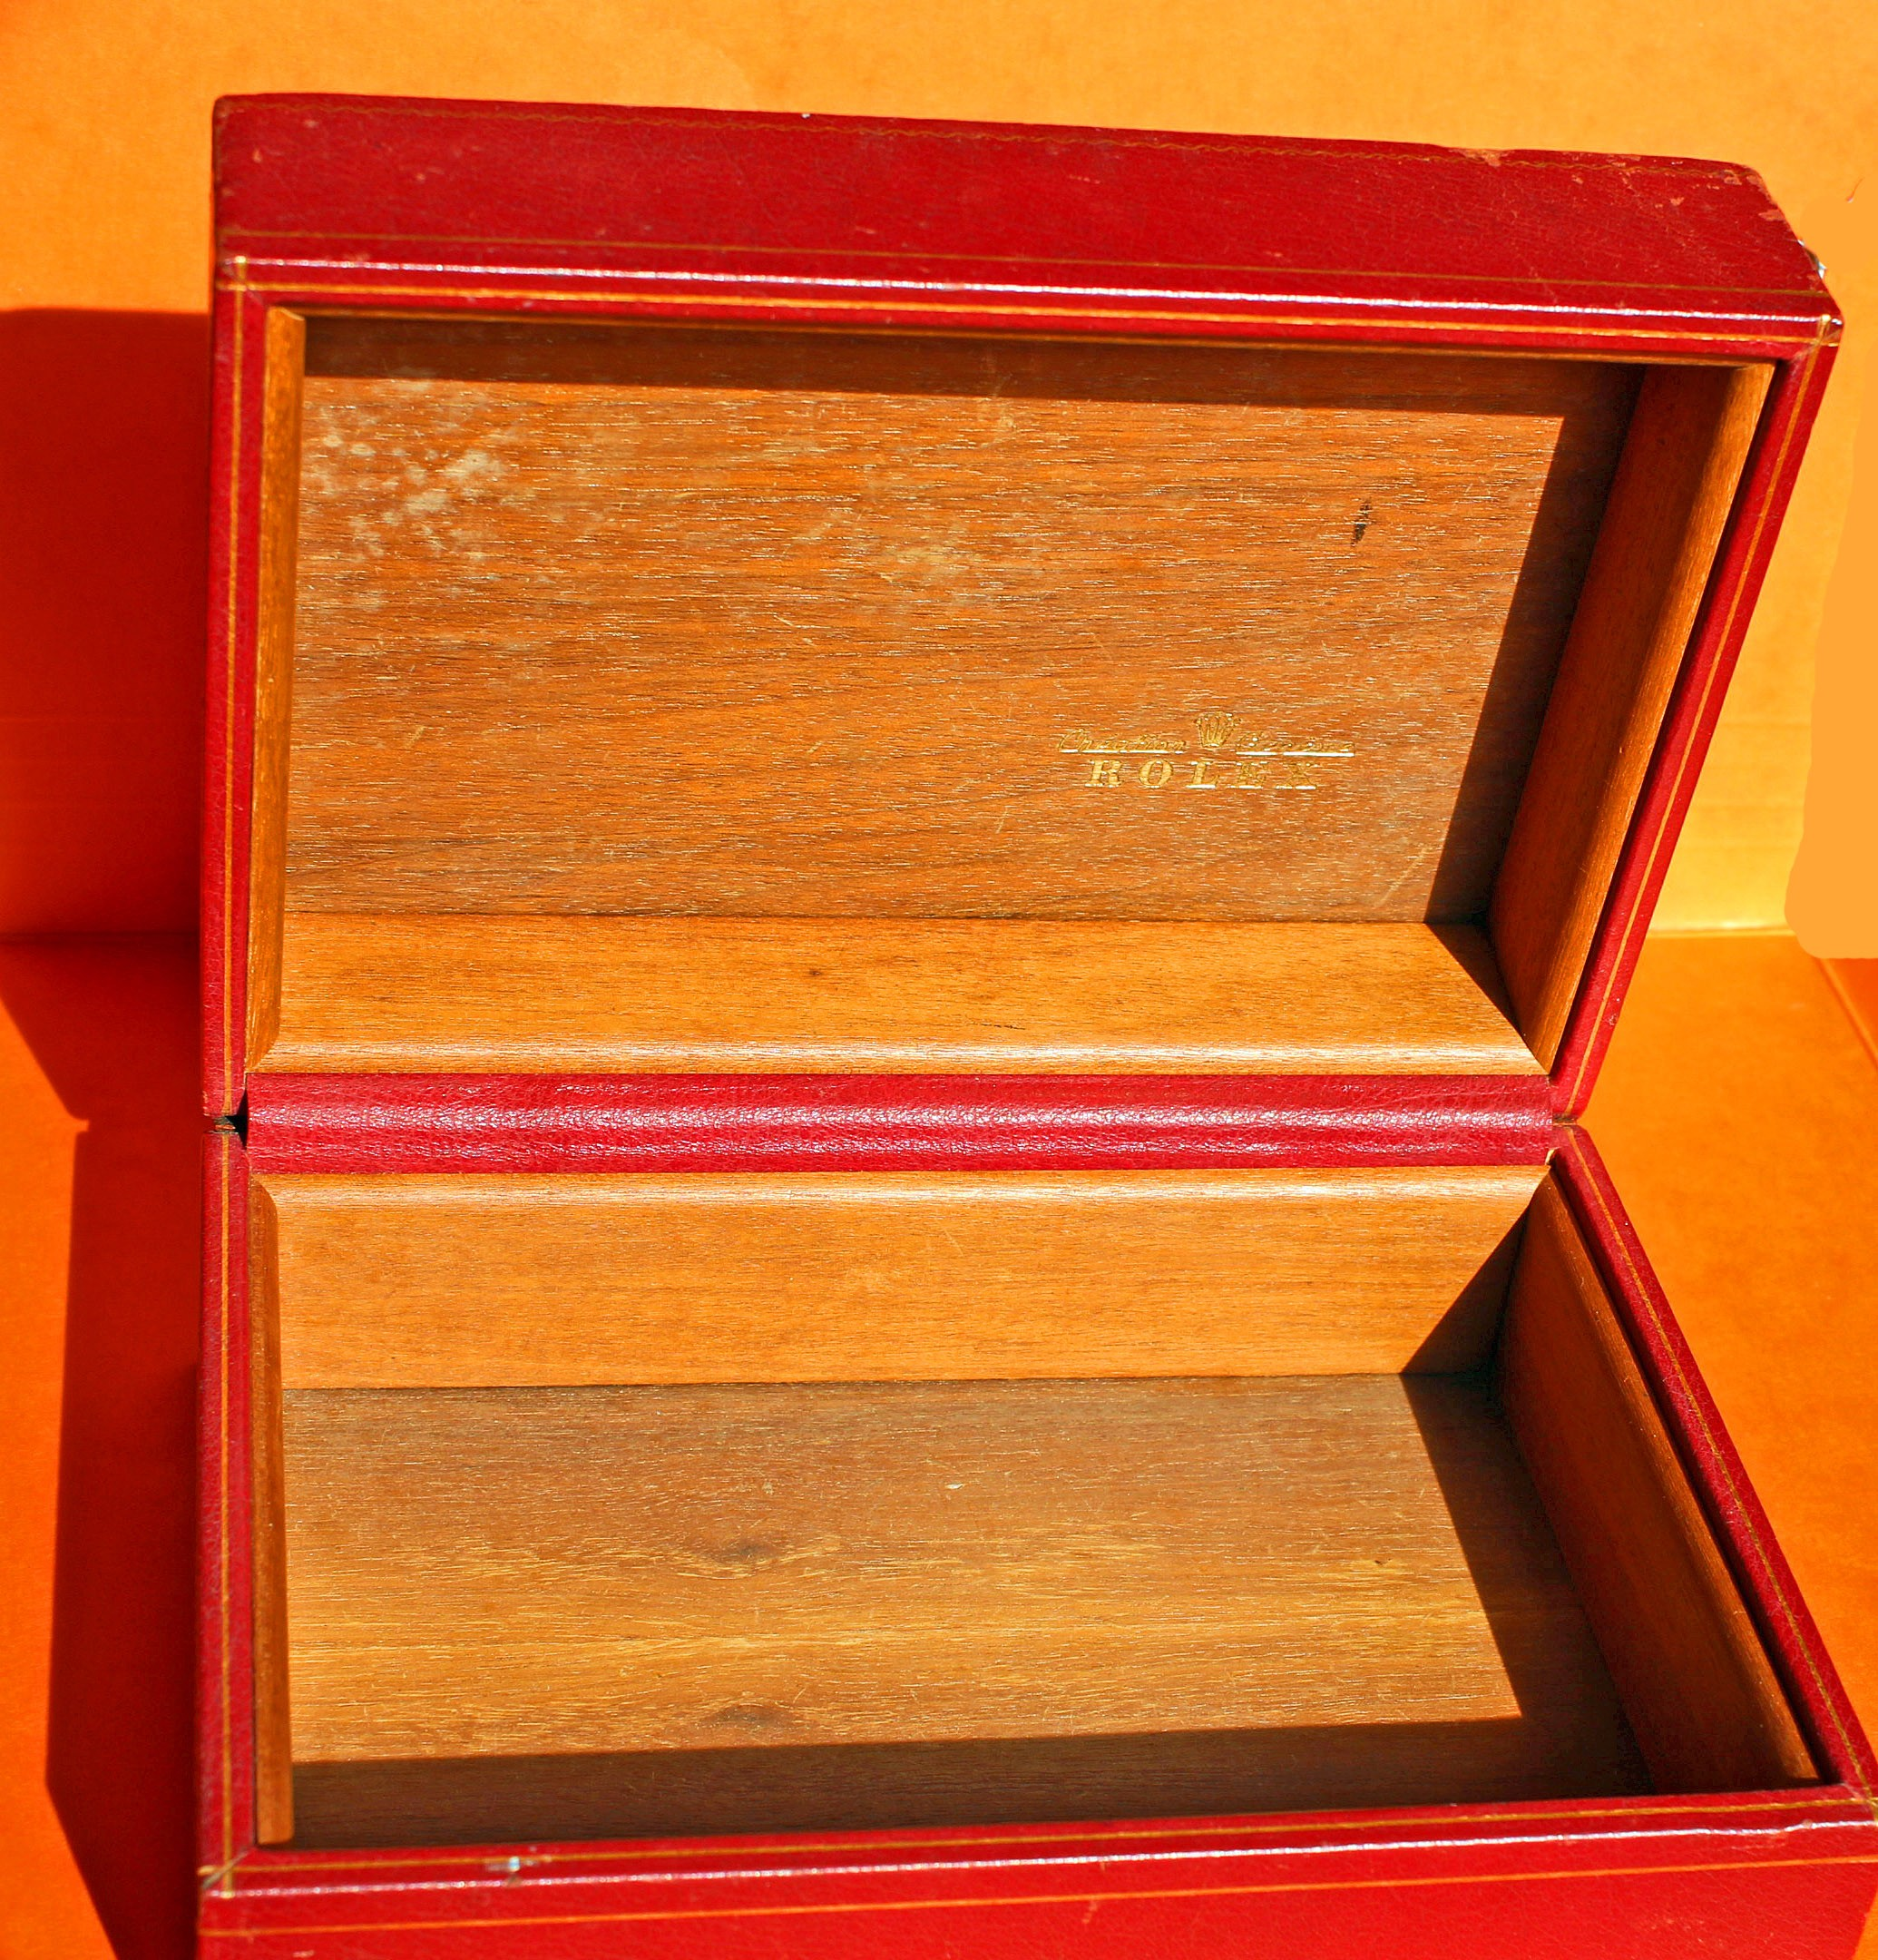 Rare 50/60's Vintage Big Red Watch BOX DATEJUST, AIR KING, MILGAUSS, DATEJUST, PRECISION, OYSTER PERPETUAL